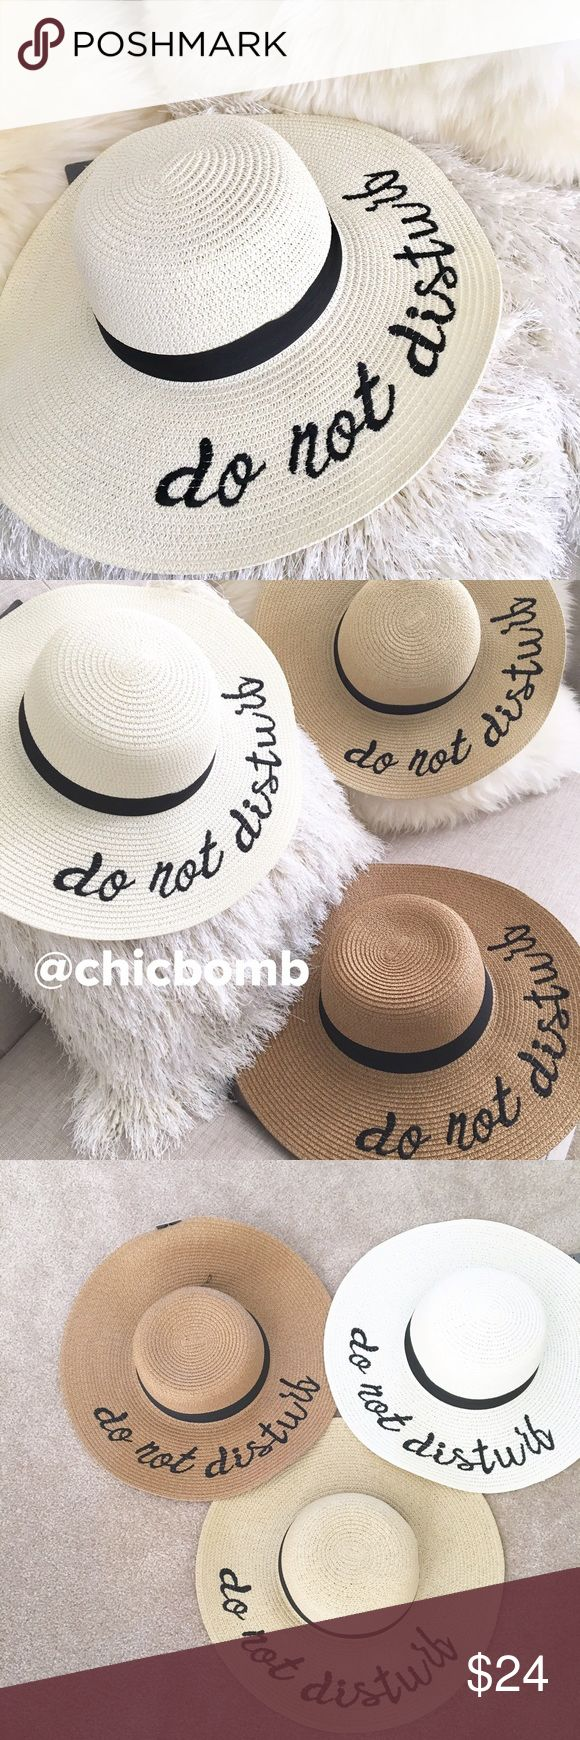 """Statement wide brimmed hat IVORY WHITE MUST HAVE embroidered summer wide brimmed hat. Available in 3 shades. This listing is for IVORY WHITE . Brim measures 16.5"""" with black embroidery statement .   Sturdy brim not too floppy. Well made high quality       . Available in ivory white, ivory or tan .Follow me on  INSTAGRAM: @chic_bomb  and FACEBOOK: @shopchicbomb CHICBOMB Accessories Hats"""